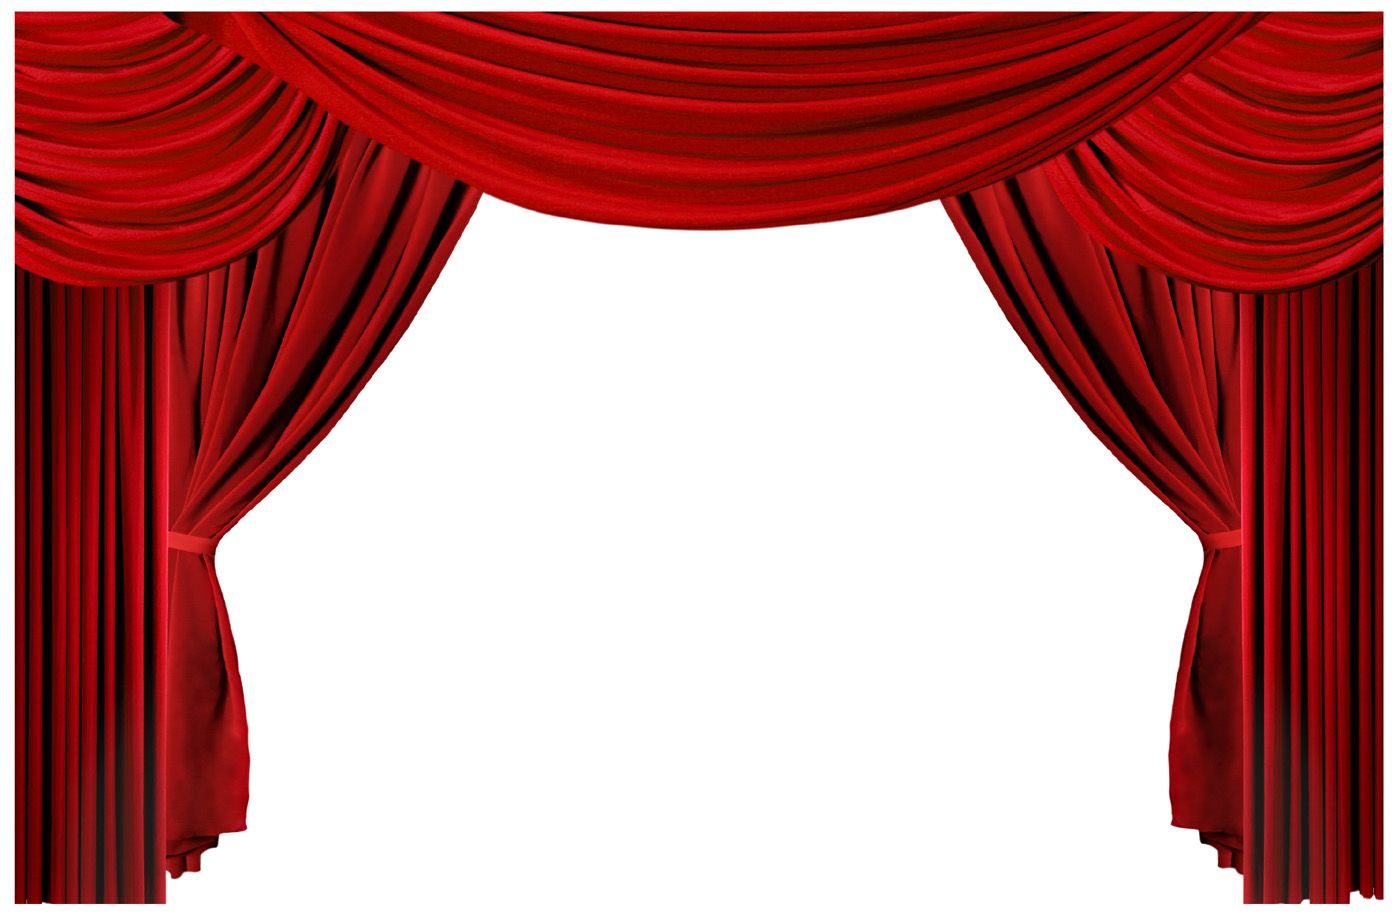 Red Curtain Curtain 11054 Stage Curtains Red Curtains Theatre